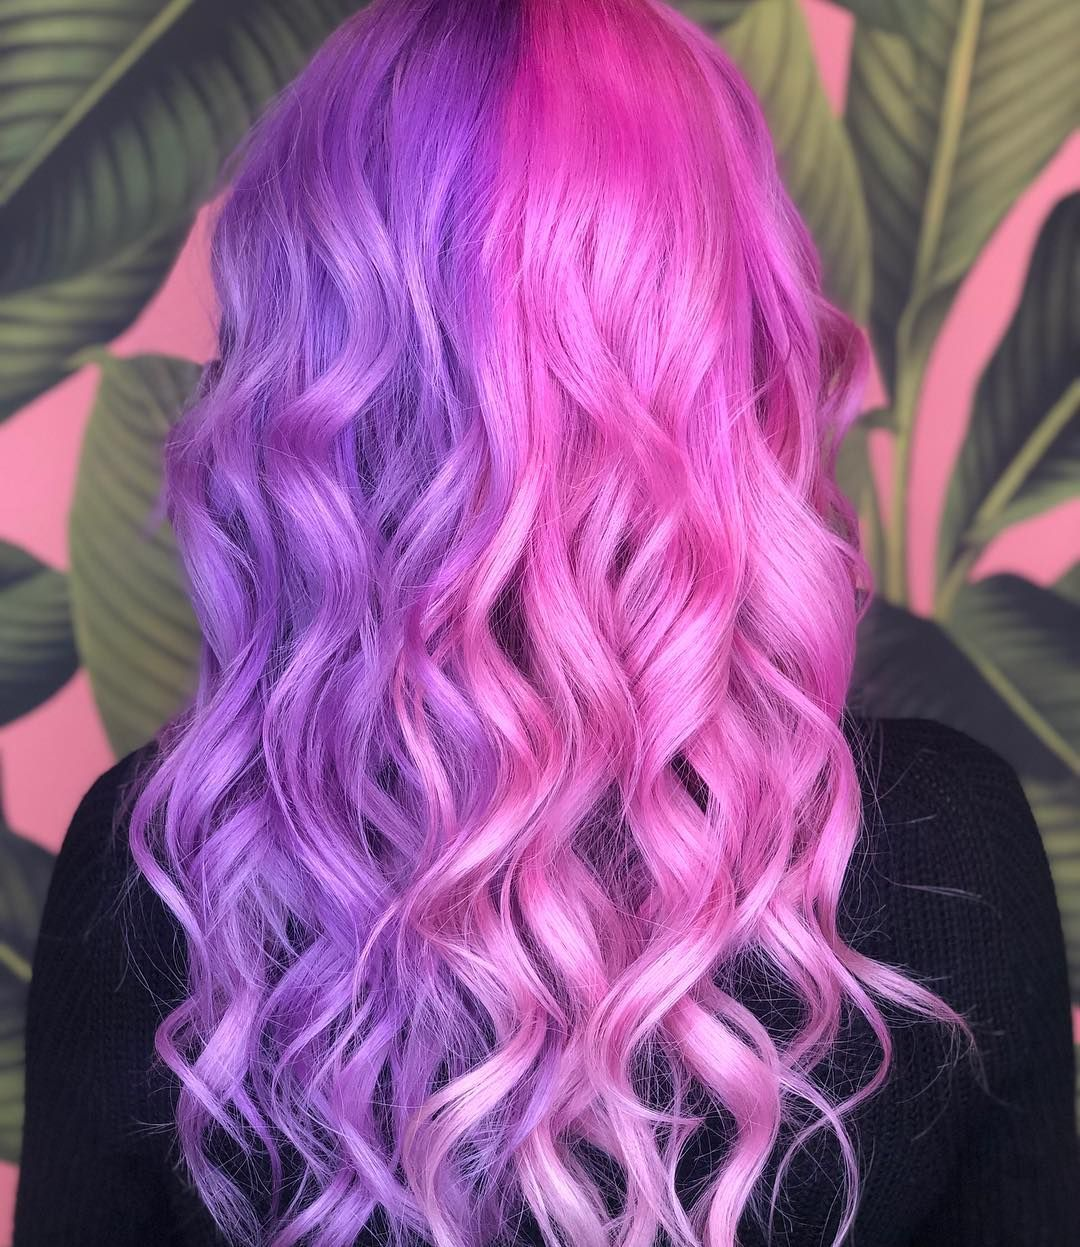 Half And Half Purple And Pink Hair Split Dyed Hair Aesthetic Hair Hair Color Pink